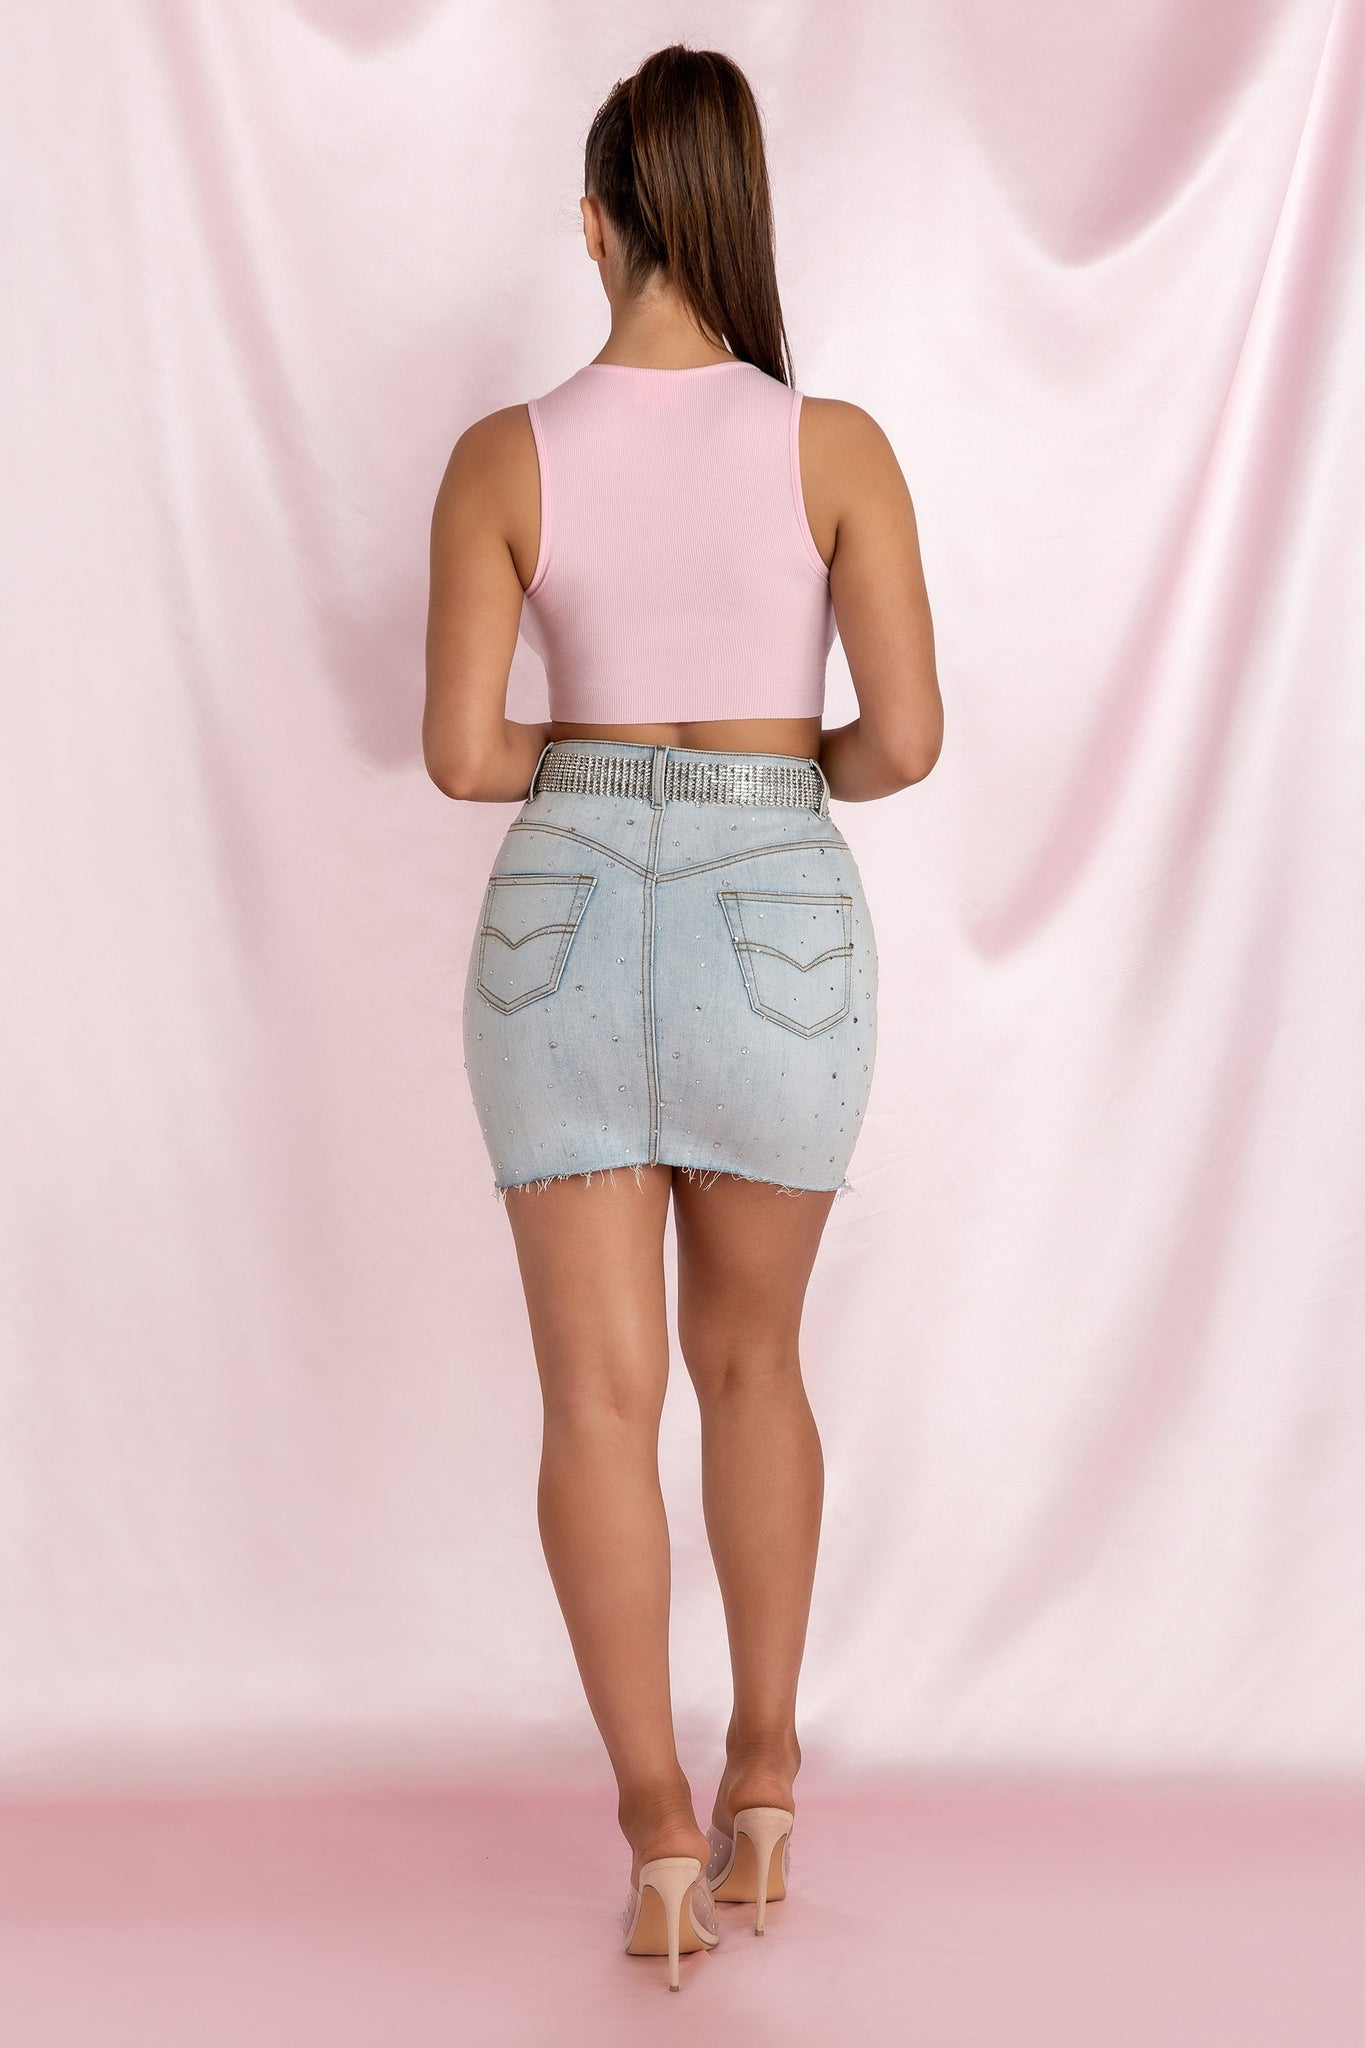 Lorelle 'Baby' Sleeveless Ribbed Crop Top - Baby Pink - MESHKI